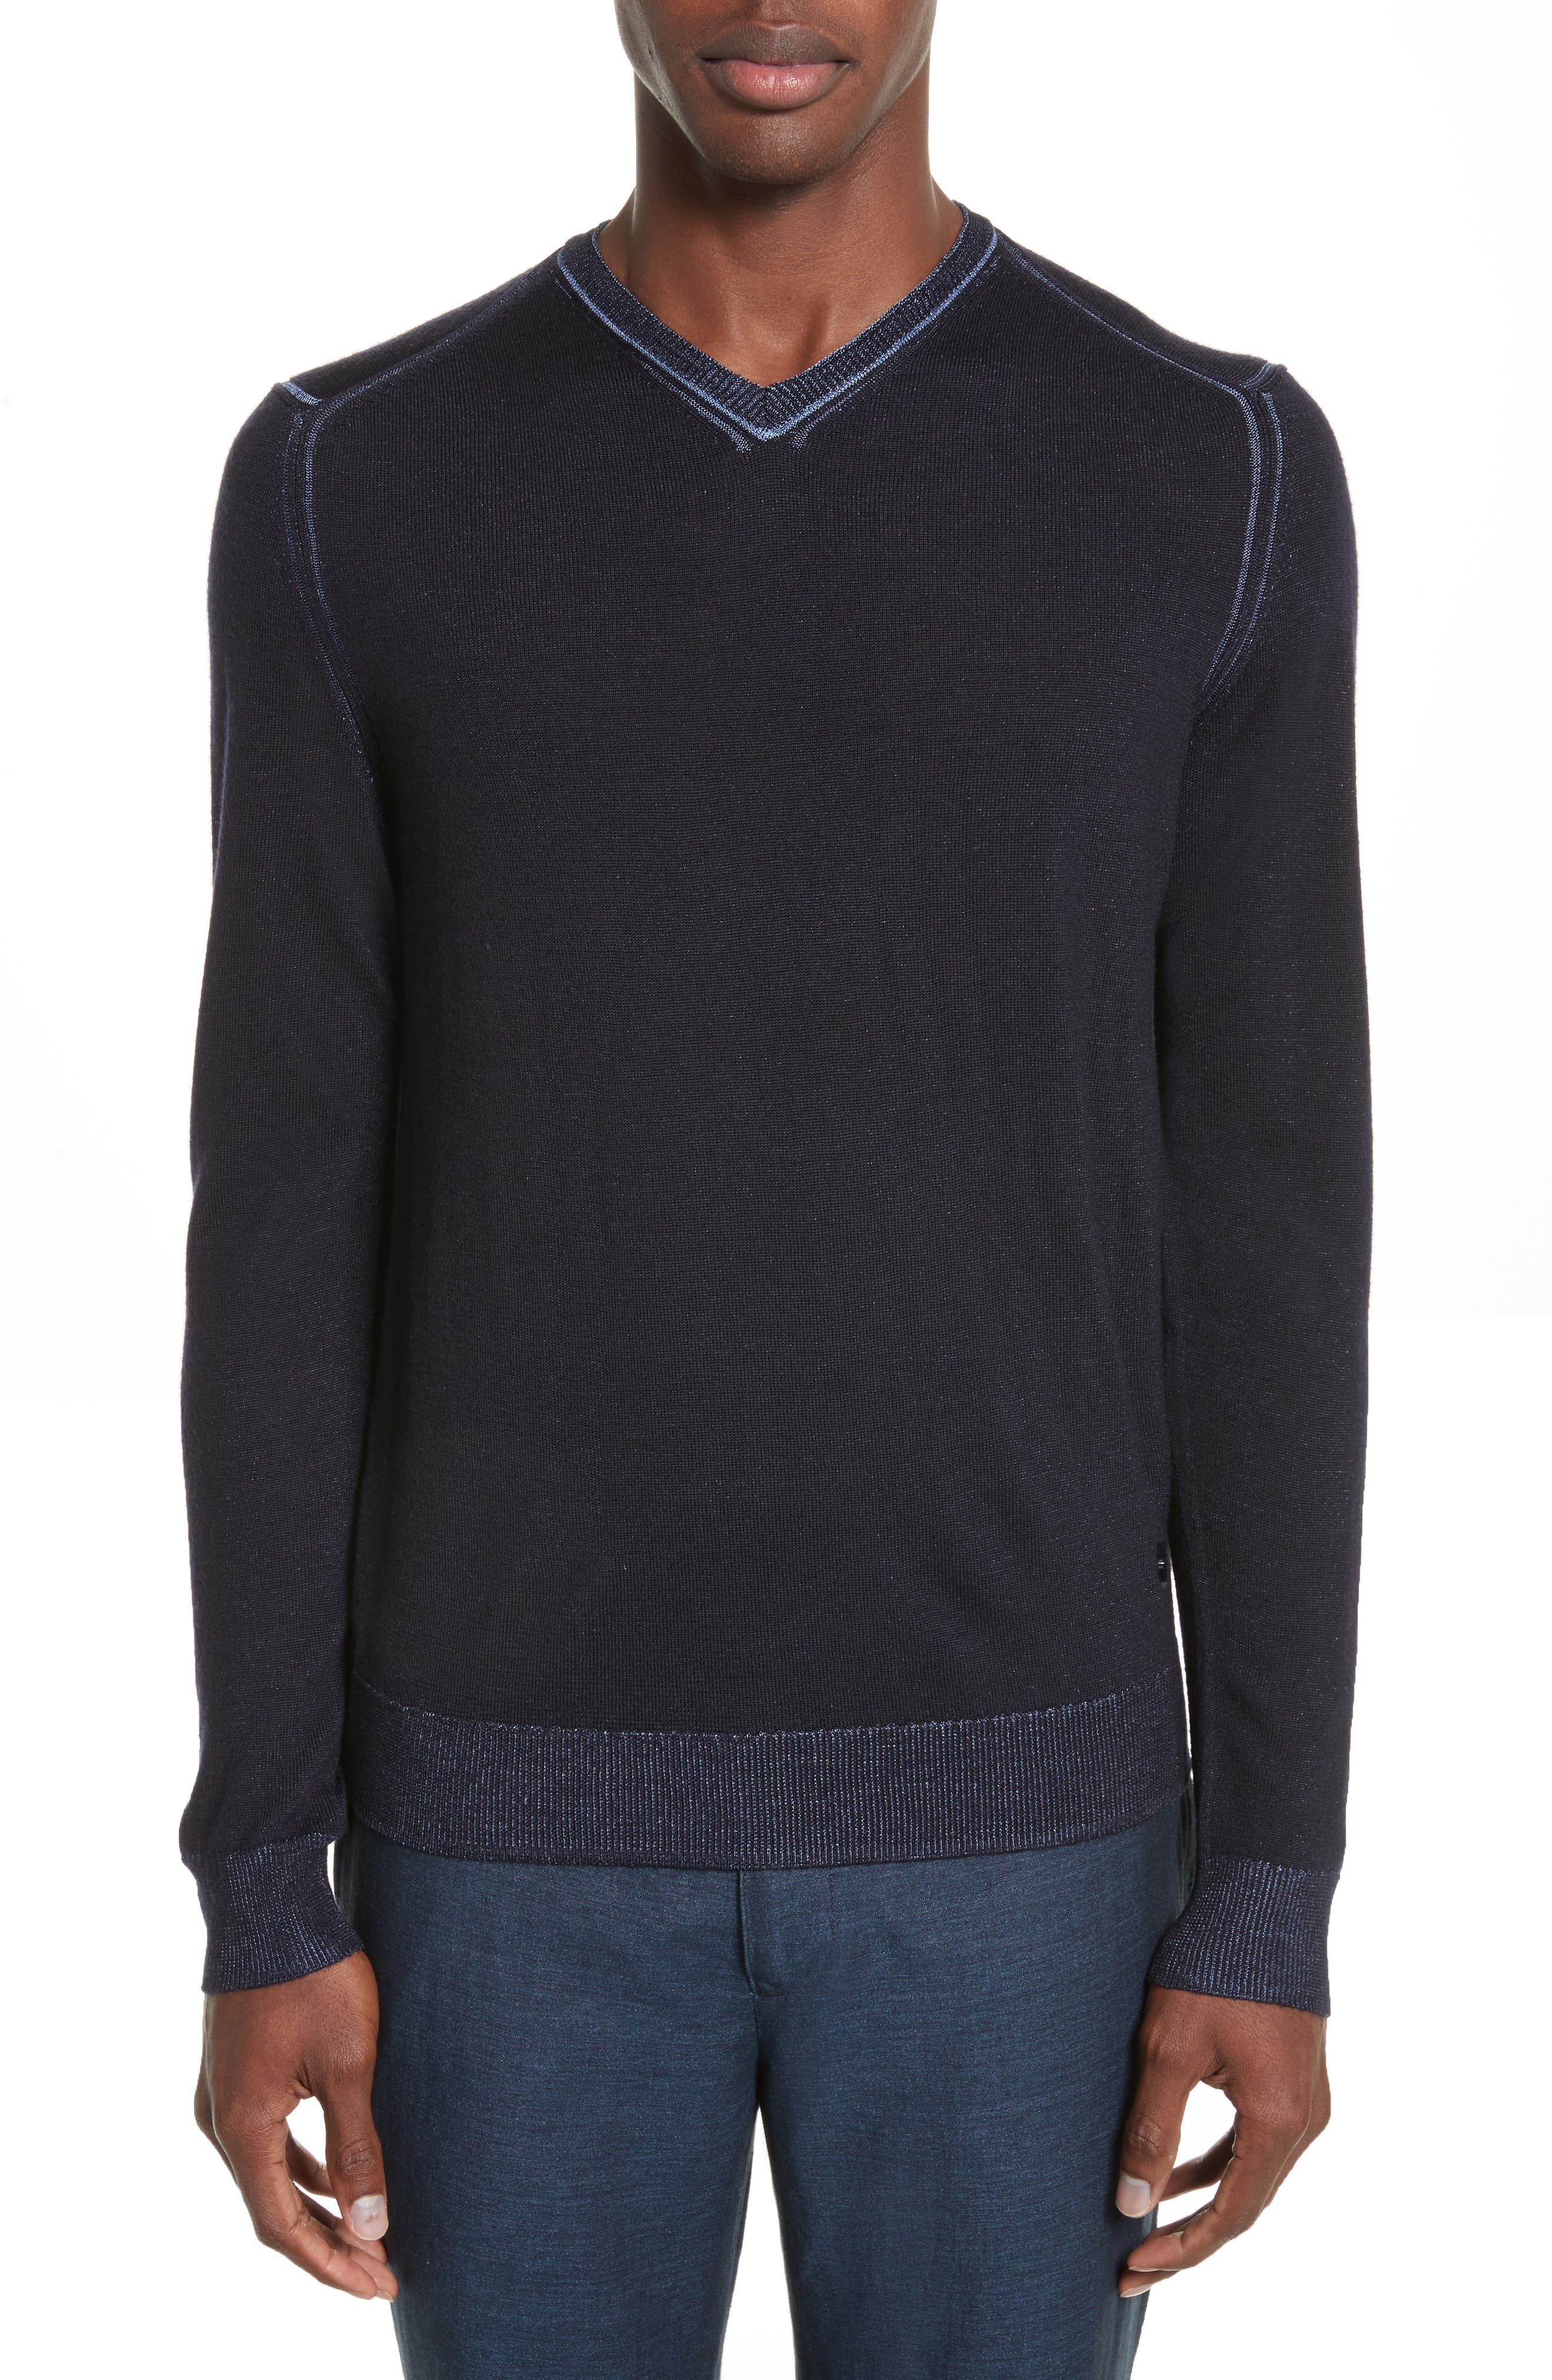 AJ V-Neck Sweater,                         Main,                         color, 404